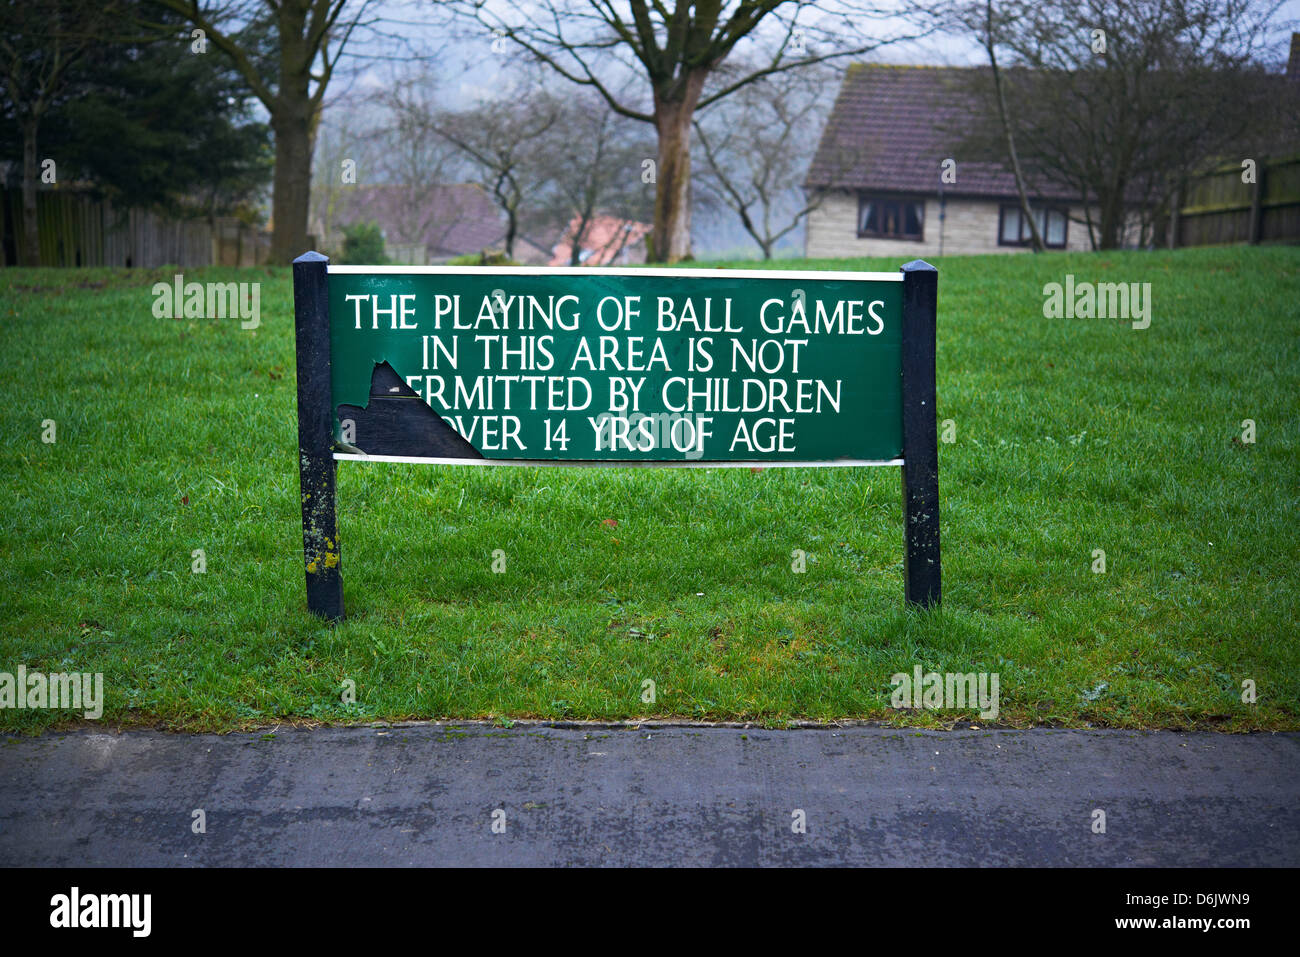 A sign saying the playing of ball games in this area is not permitted by children over 14 years of age - Stock Image